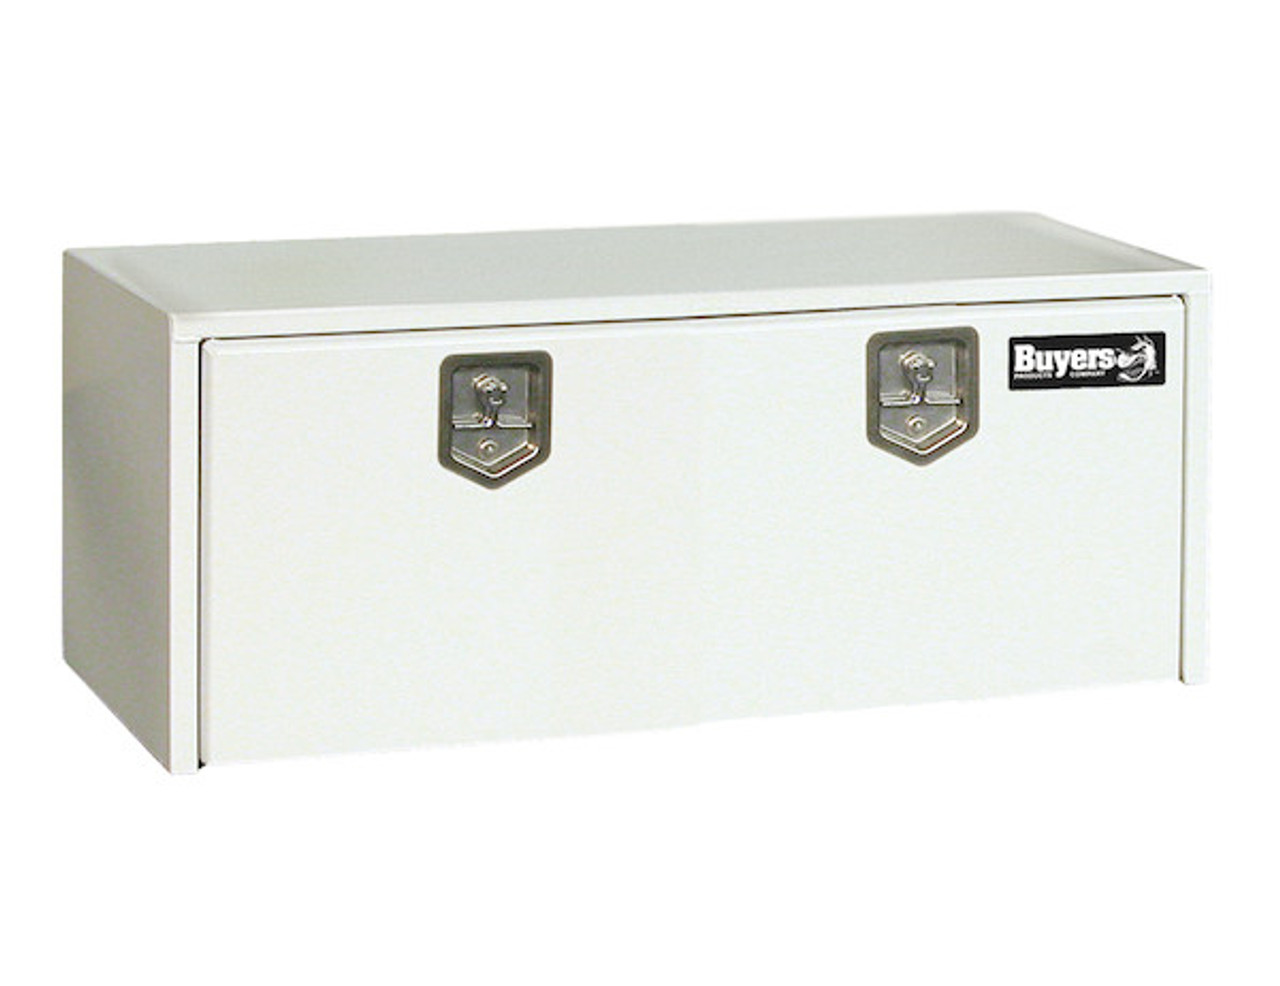 "1702410 BUYERS PRODUCTS WHITE STEEL UNDERBODY TRUCK BOX TOOLBOX 18""HX18""DX48""W"